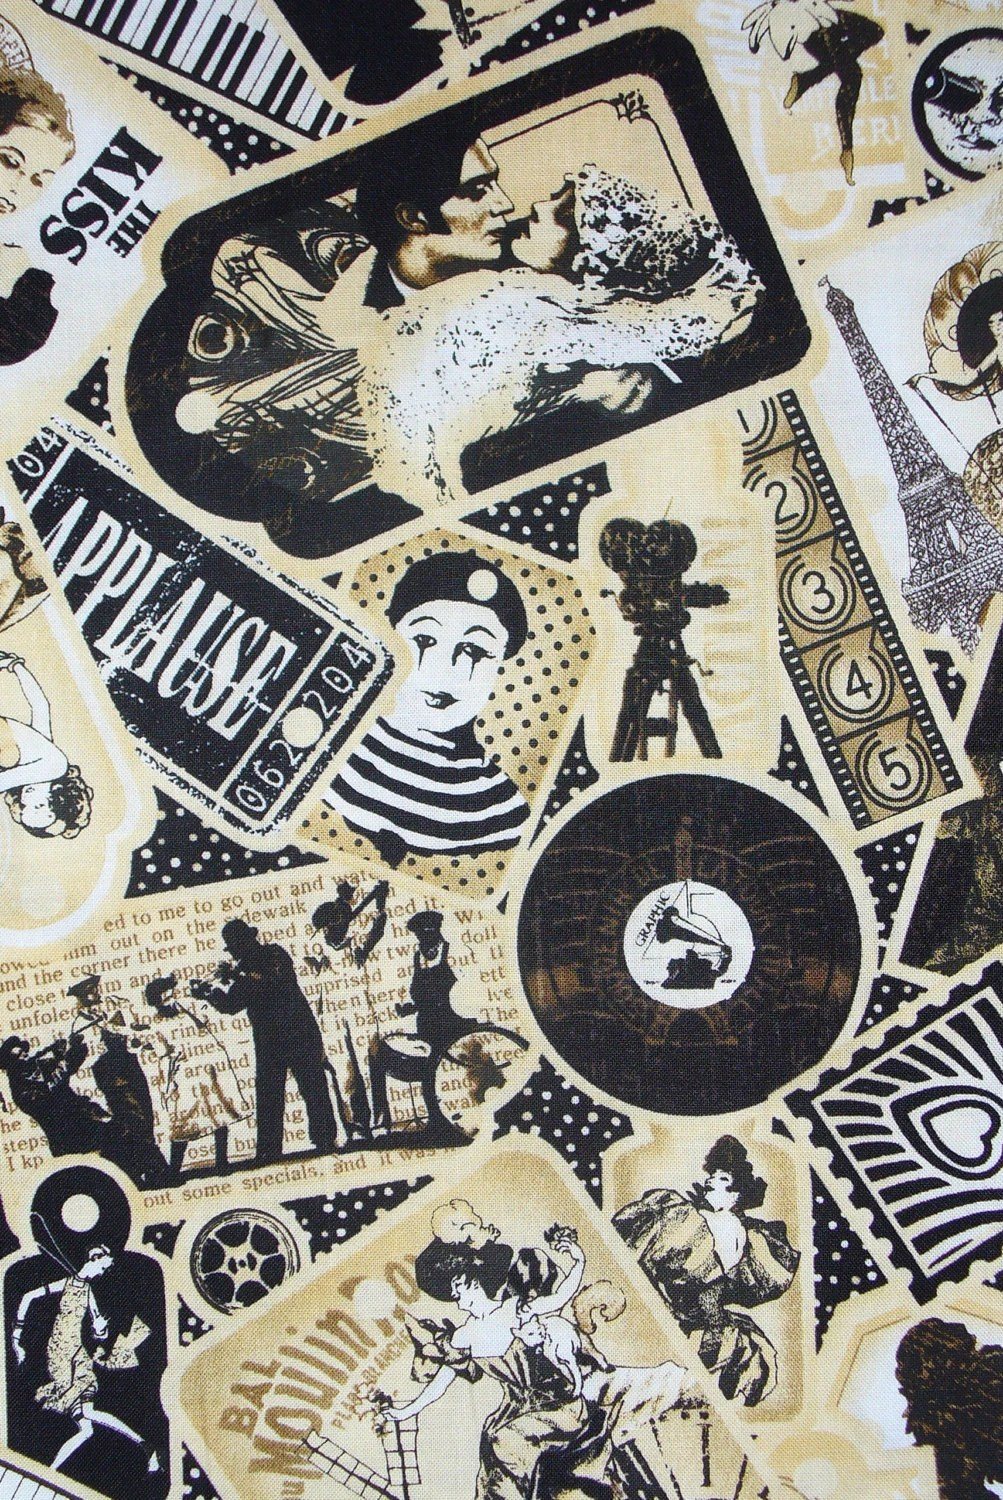 Curtain Call Fabric Movies Fabric Silent Films Charlie Chaplin